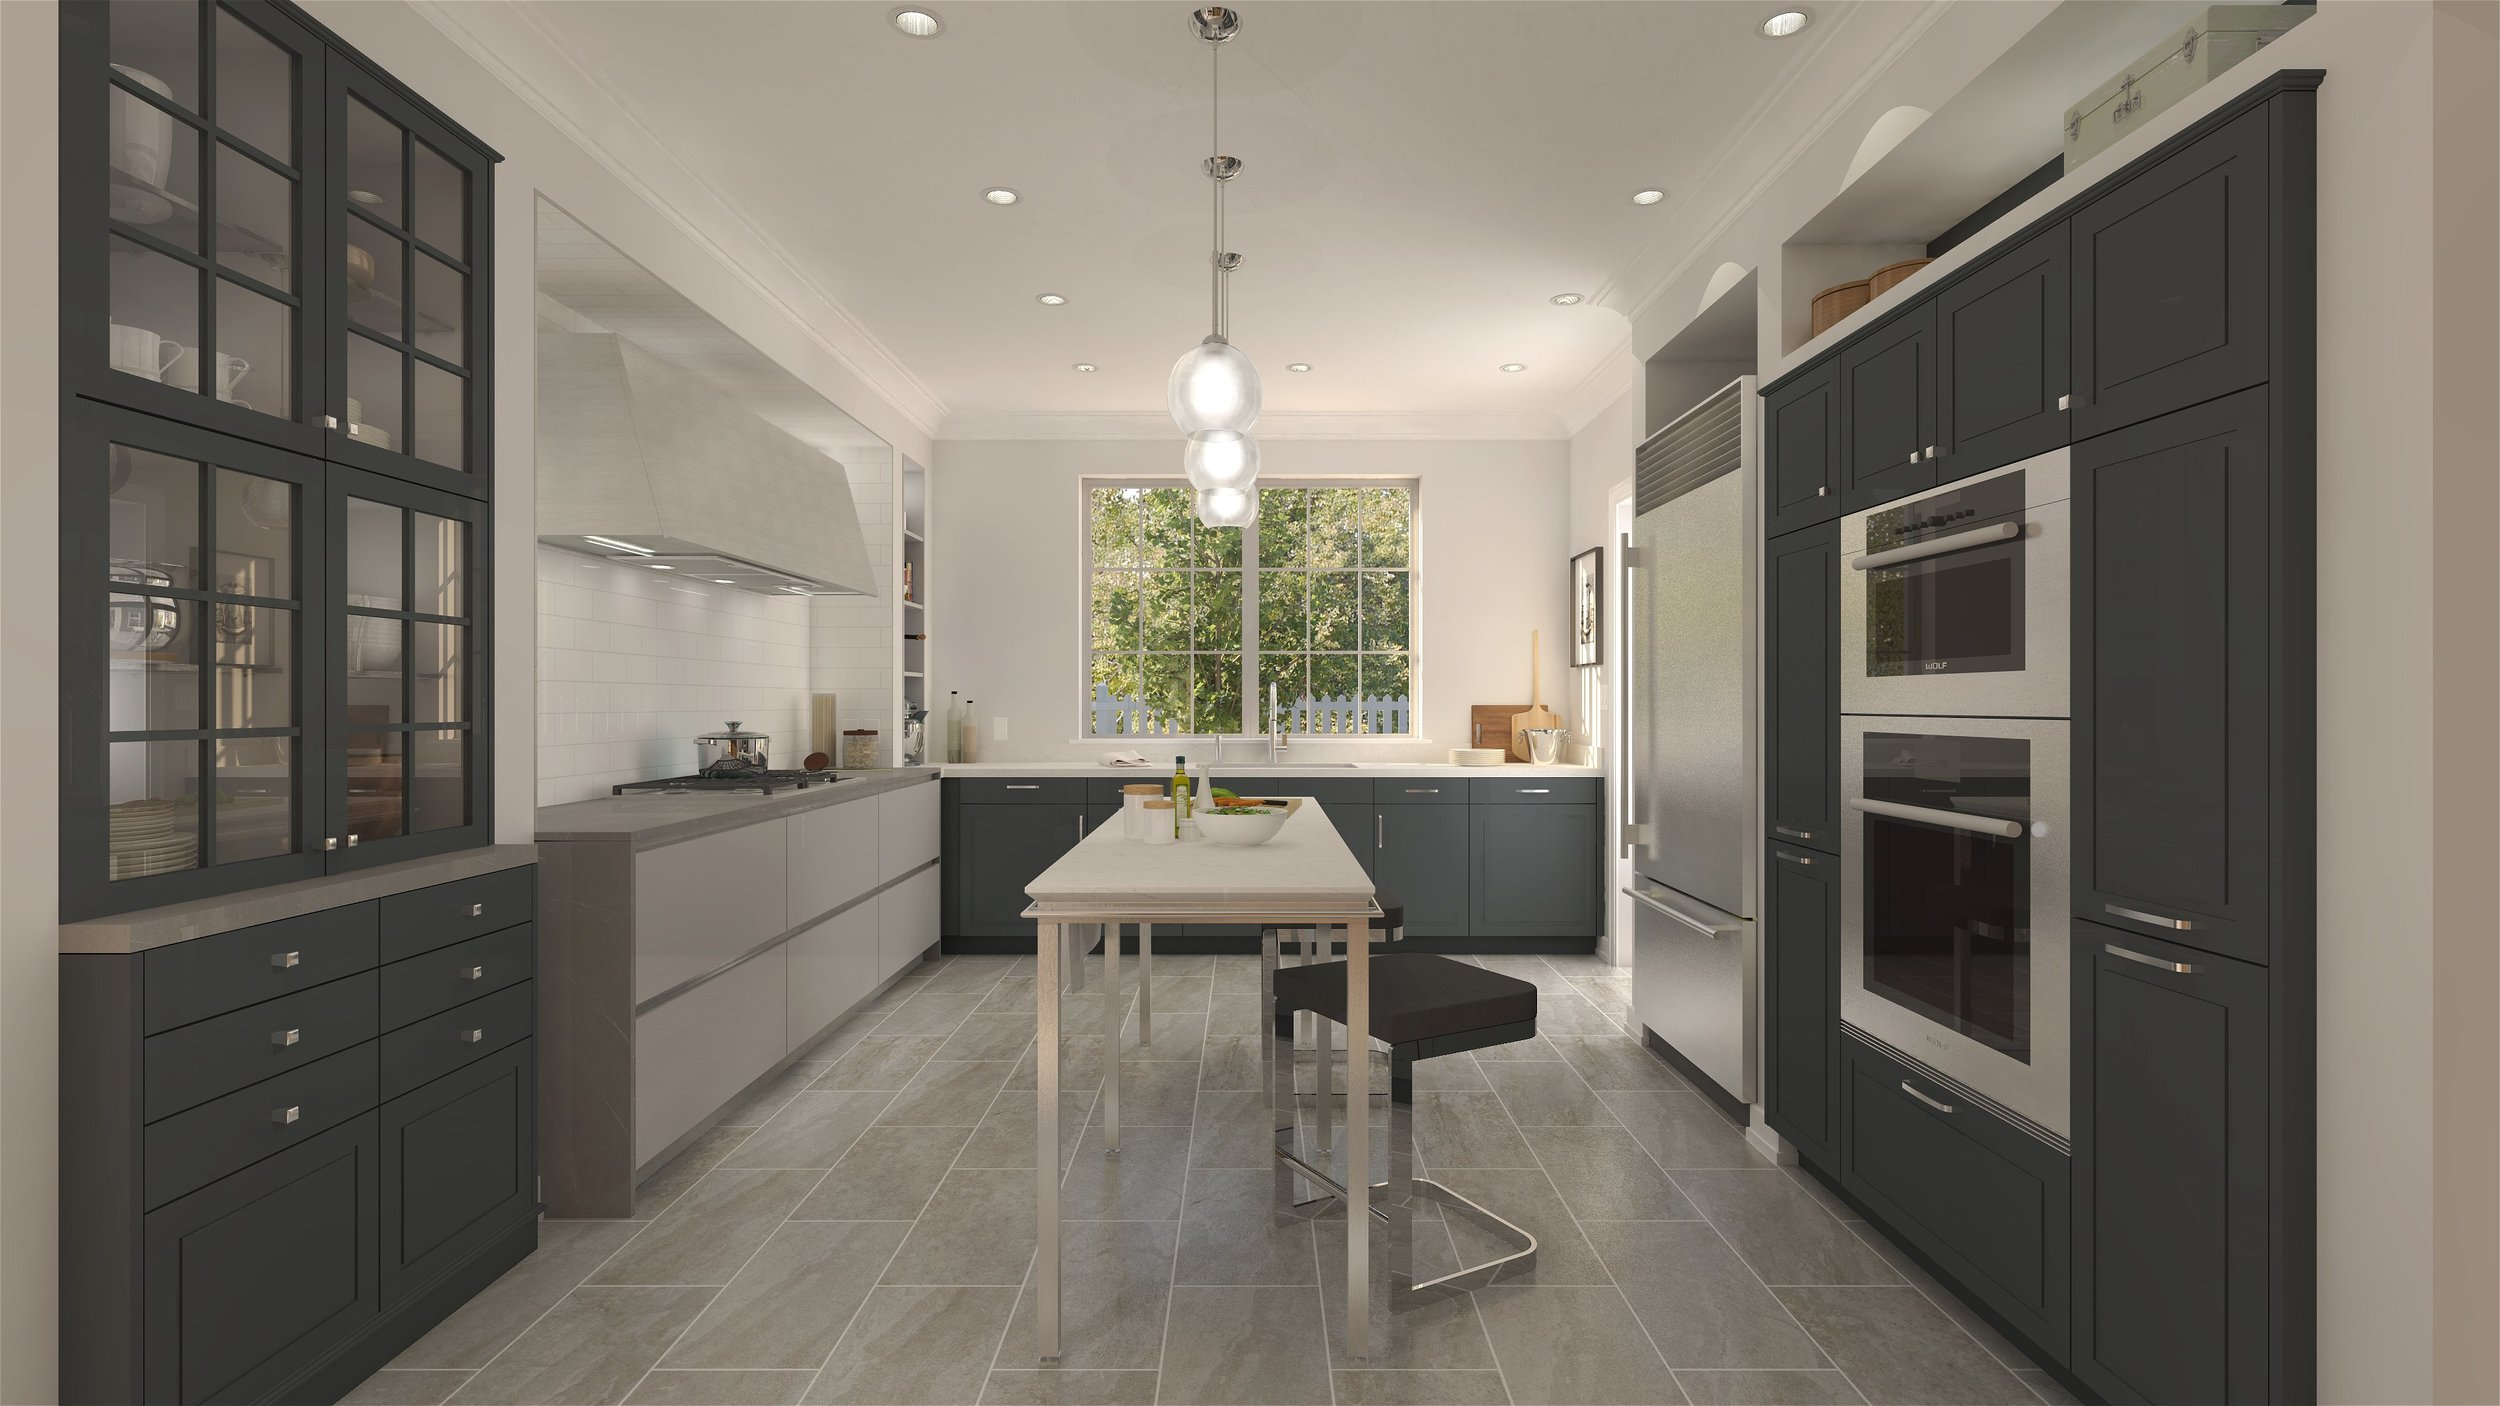 Eclectic Chef - See More